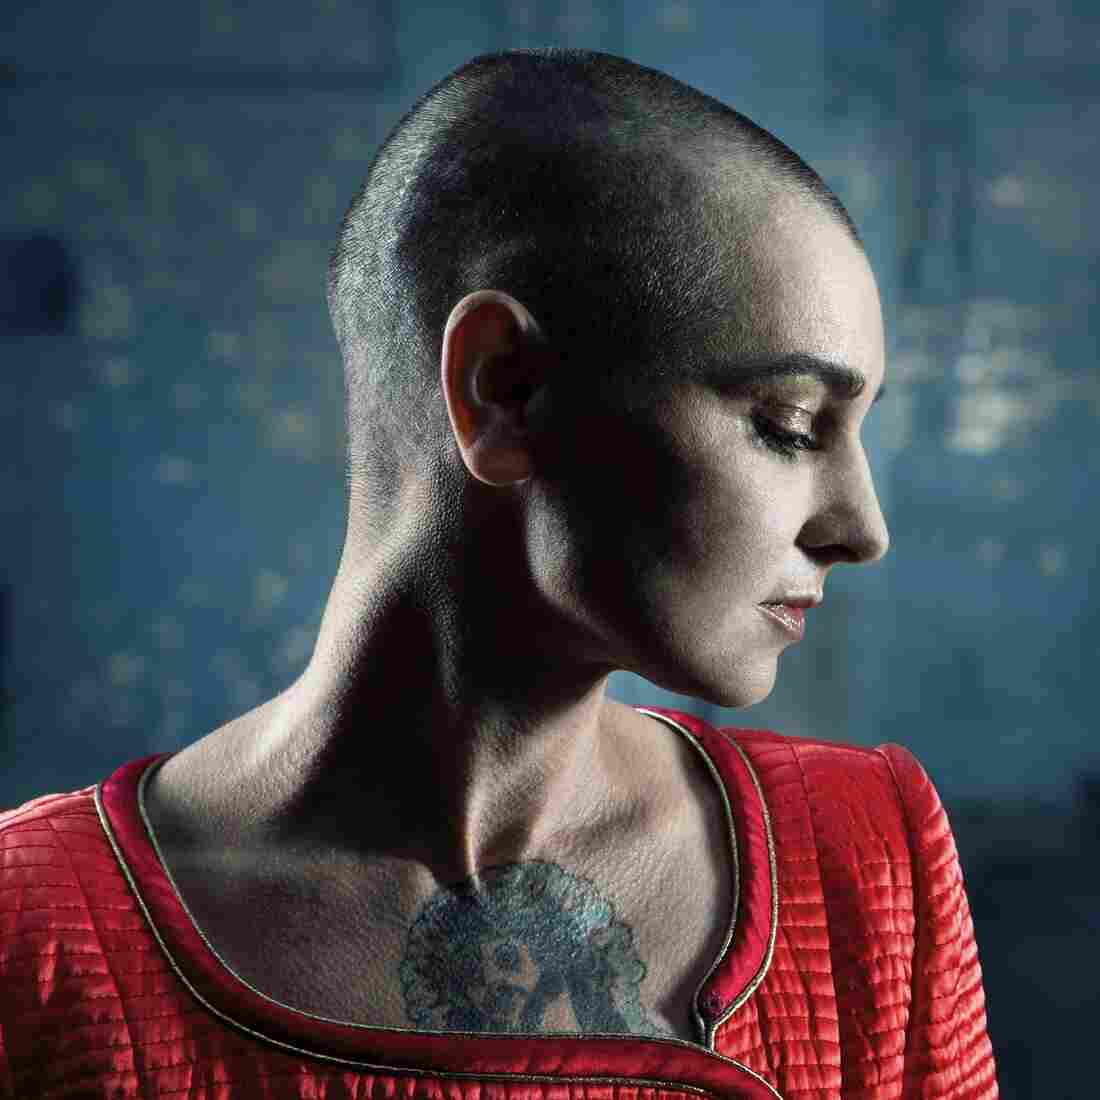 Sinead O'Connor's new album, I'm Not Bossy, I'm The Boss, comes out Aug. 12.